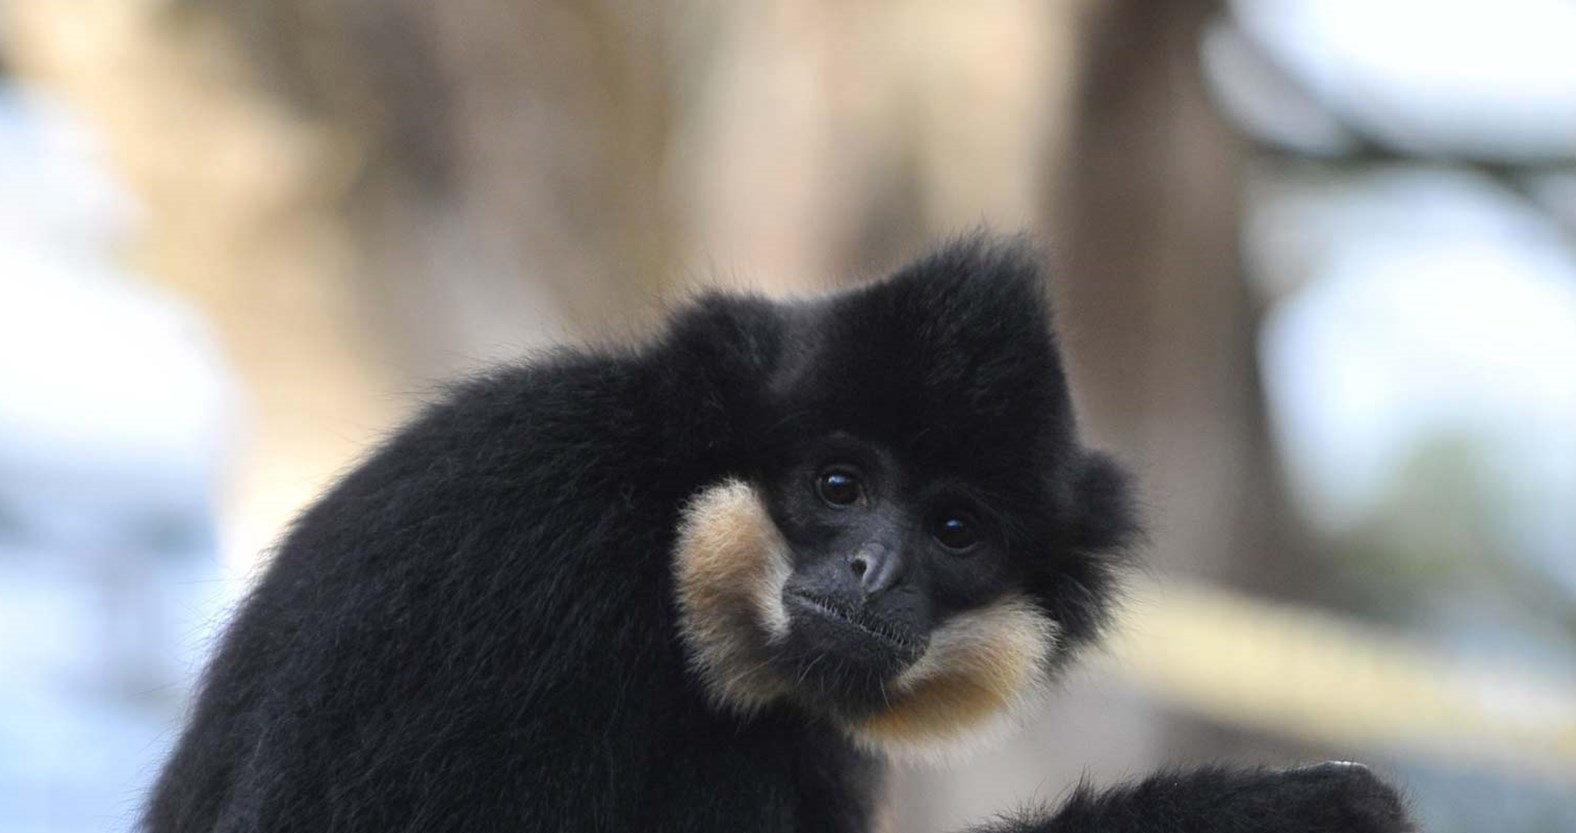 Buff-cheeked gibbons